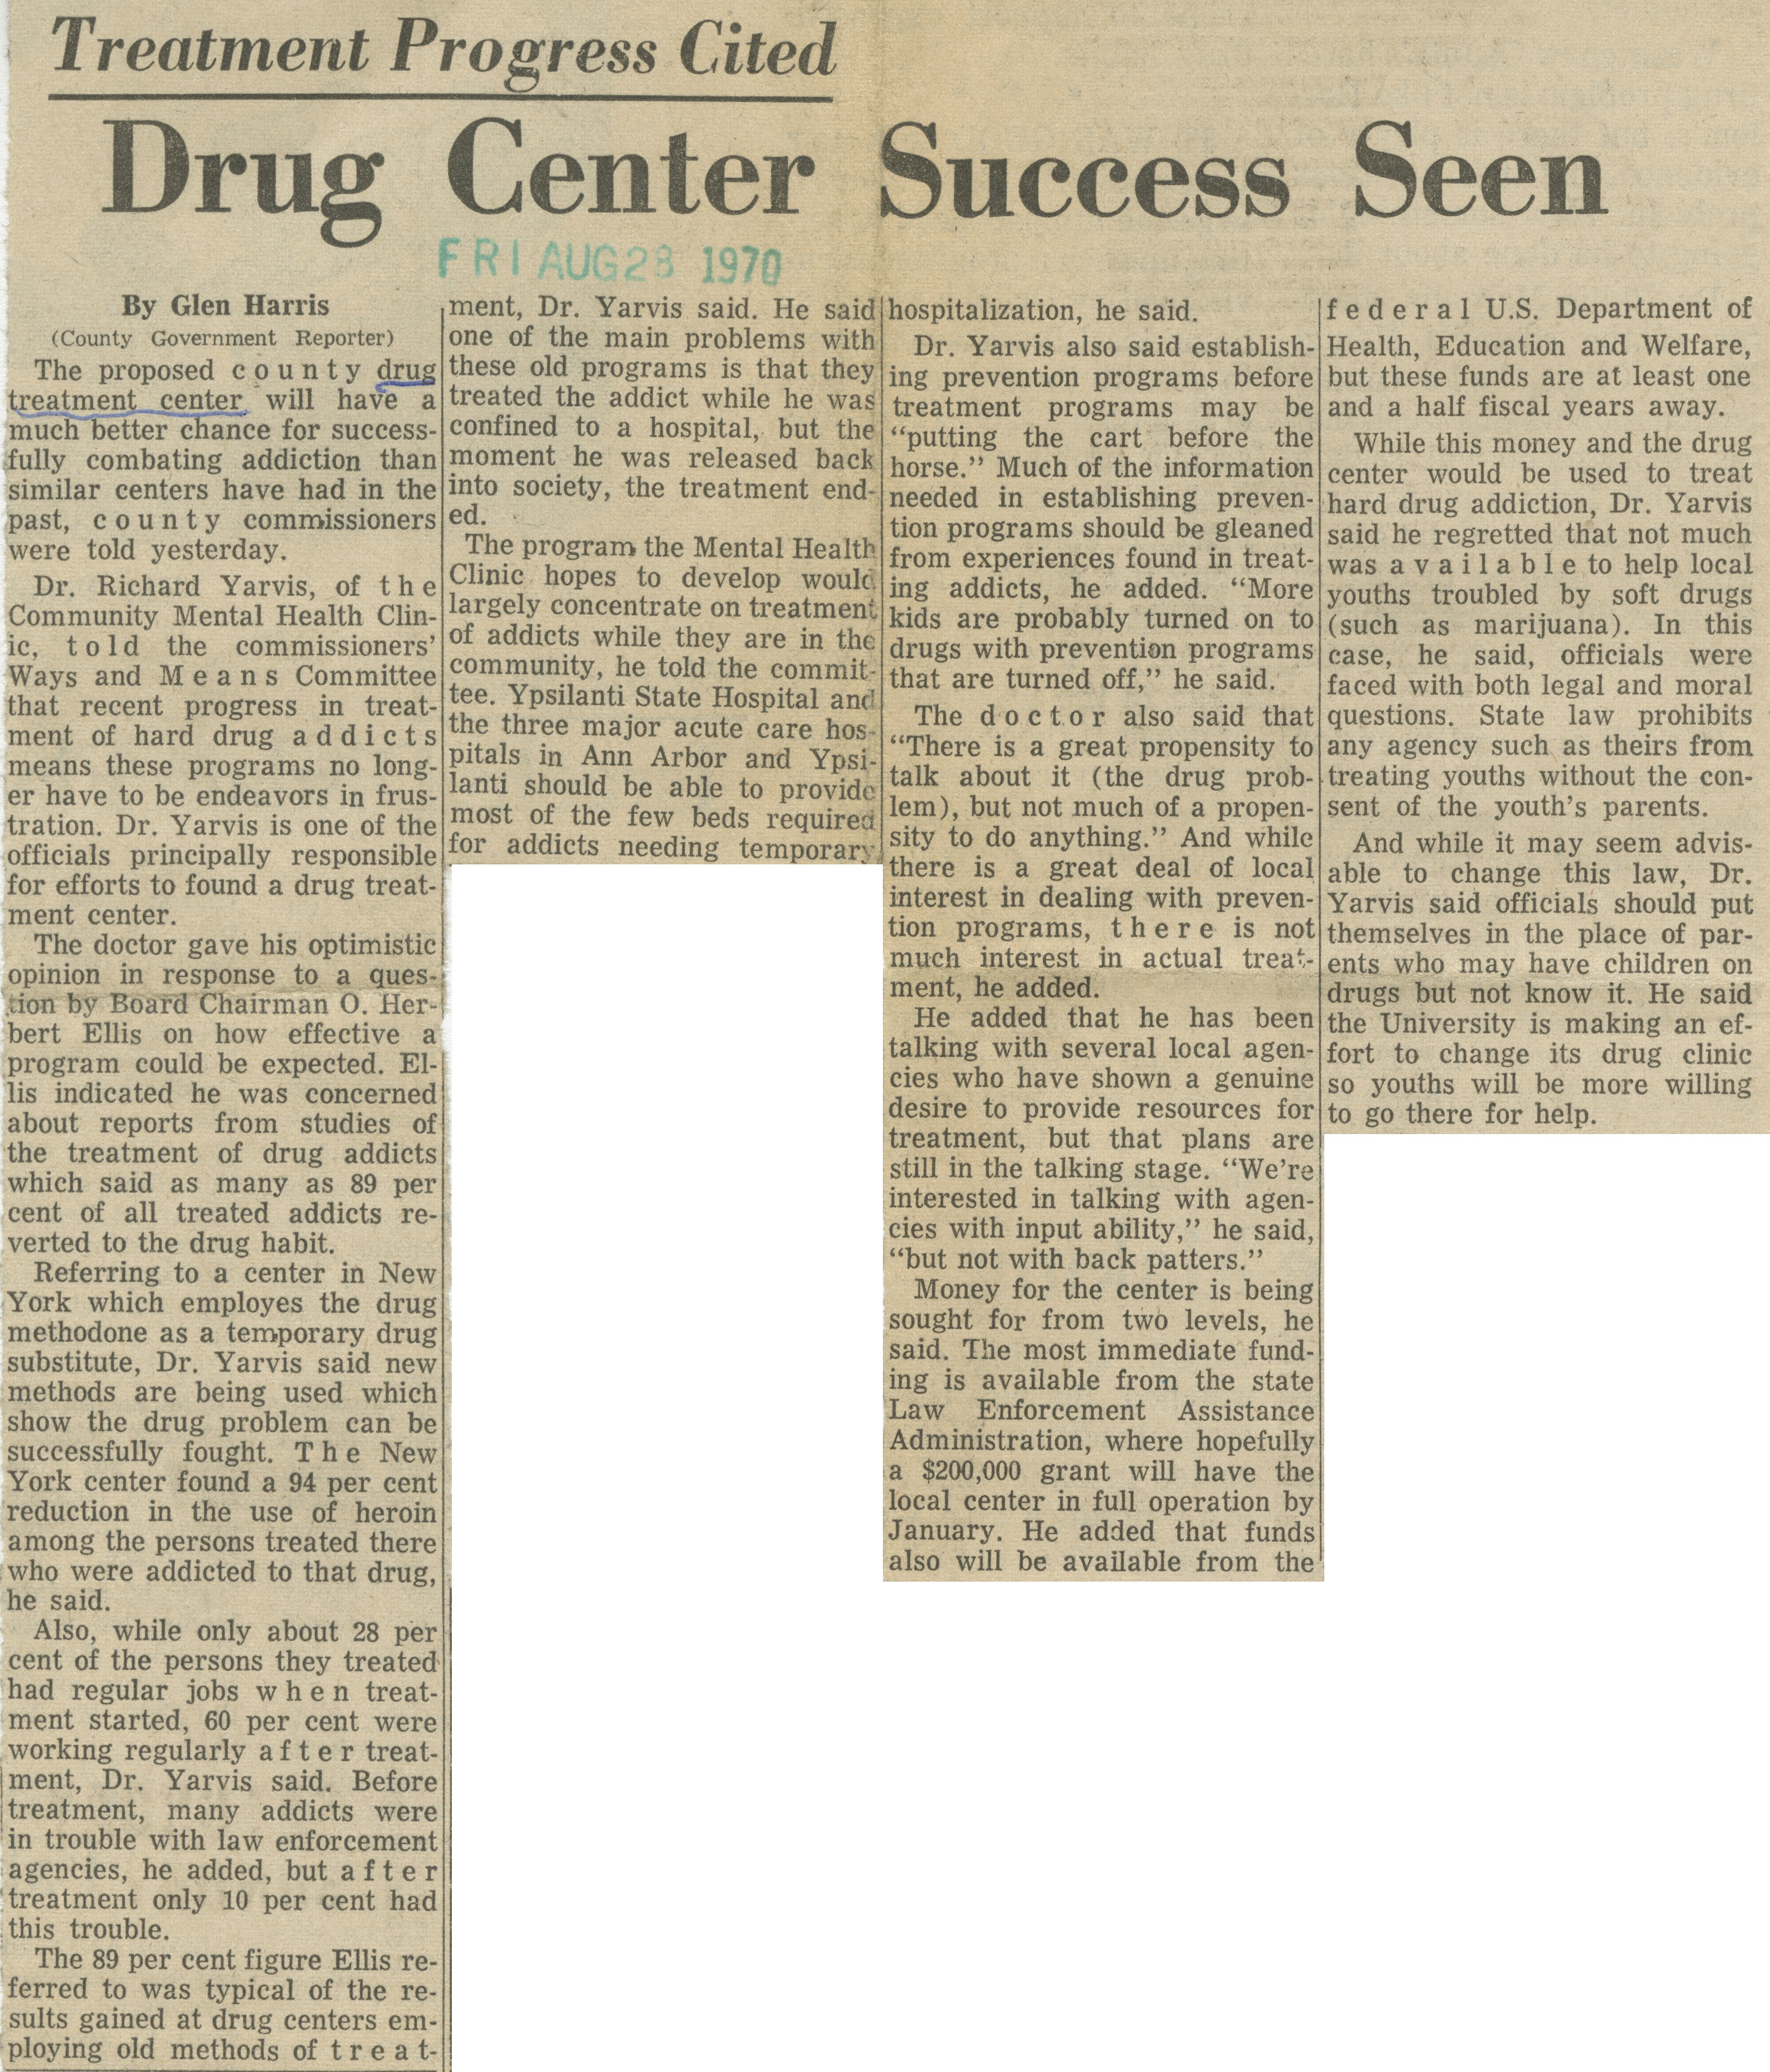 Drug Center Success Seen image